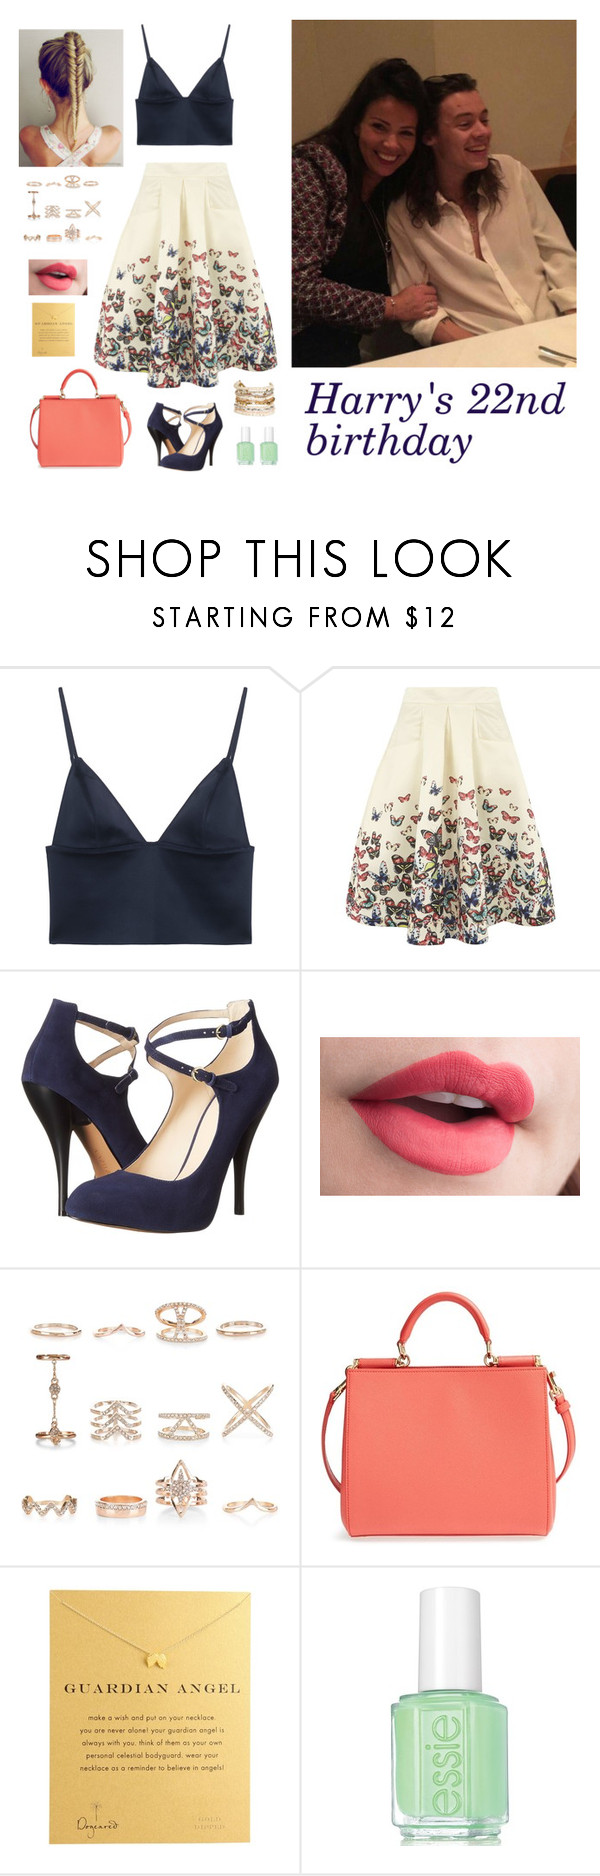 """Harry's 22nd birthday"" by hazzabum ❤ liked on Polyvore featuring T By Alexander Wang, Jolie Moi, Nine West, New Look, Dolce&Gabbana, Dogeared, Essie, Panacea and harrystyles"